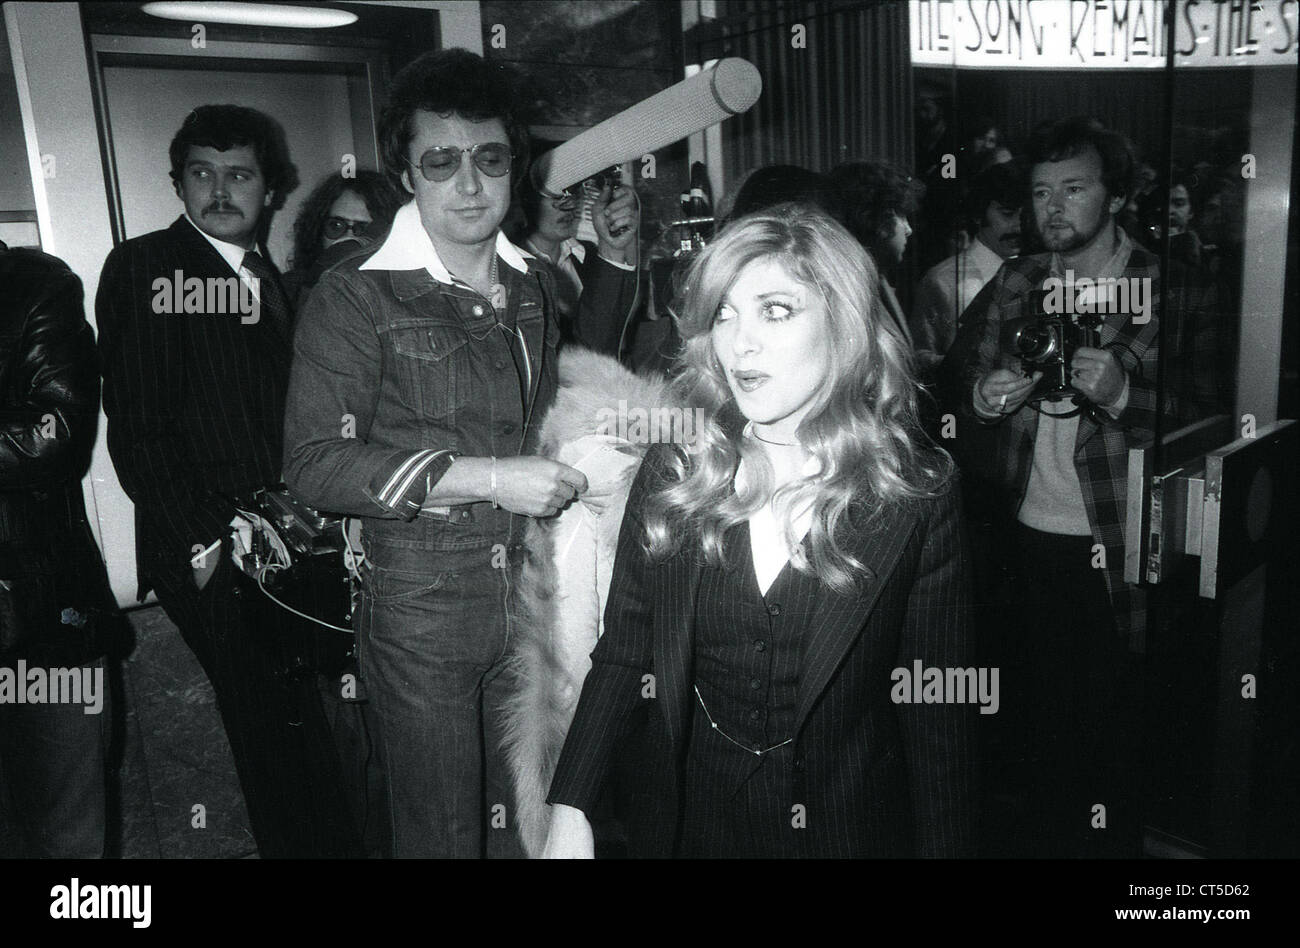 009542 - Lynsey De Paul at the UK Premiere of The Song Remains The Same at Warner West End Cinema, London on 4th Stock Photo